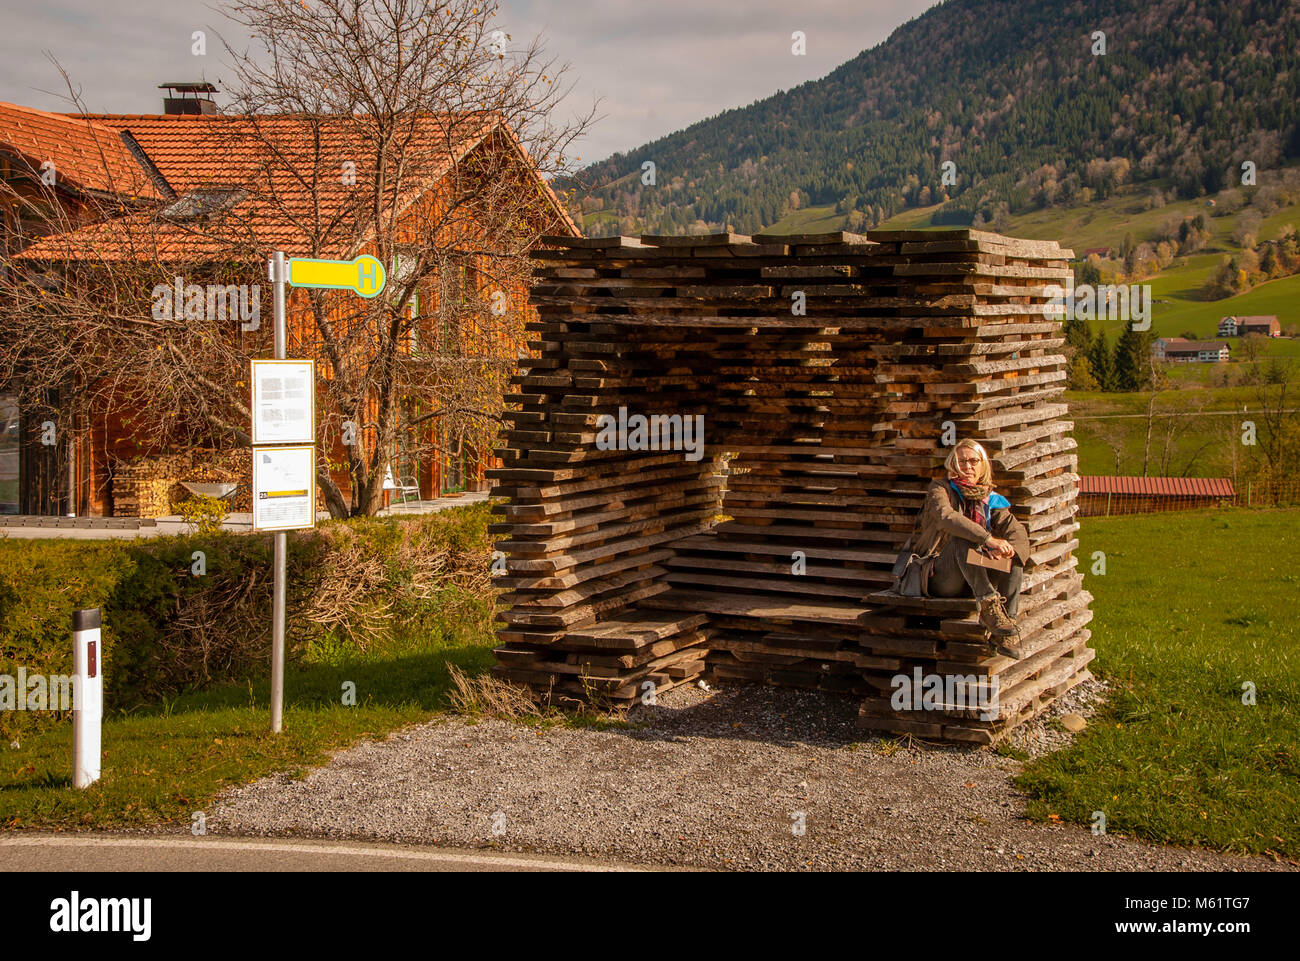 Bus shelter as art object in Krumbach, Austria - Stock Image